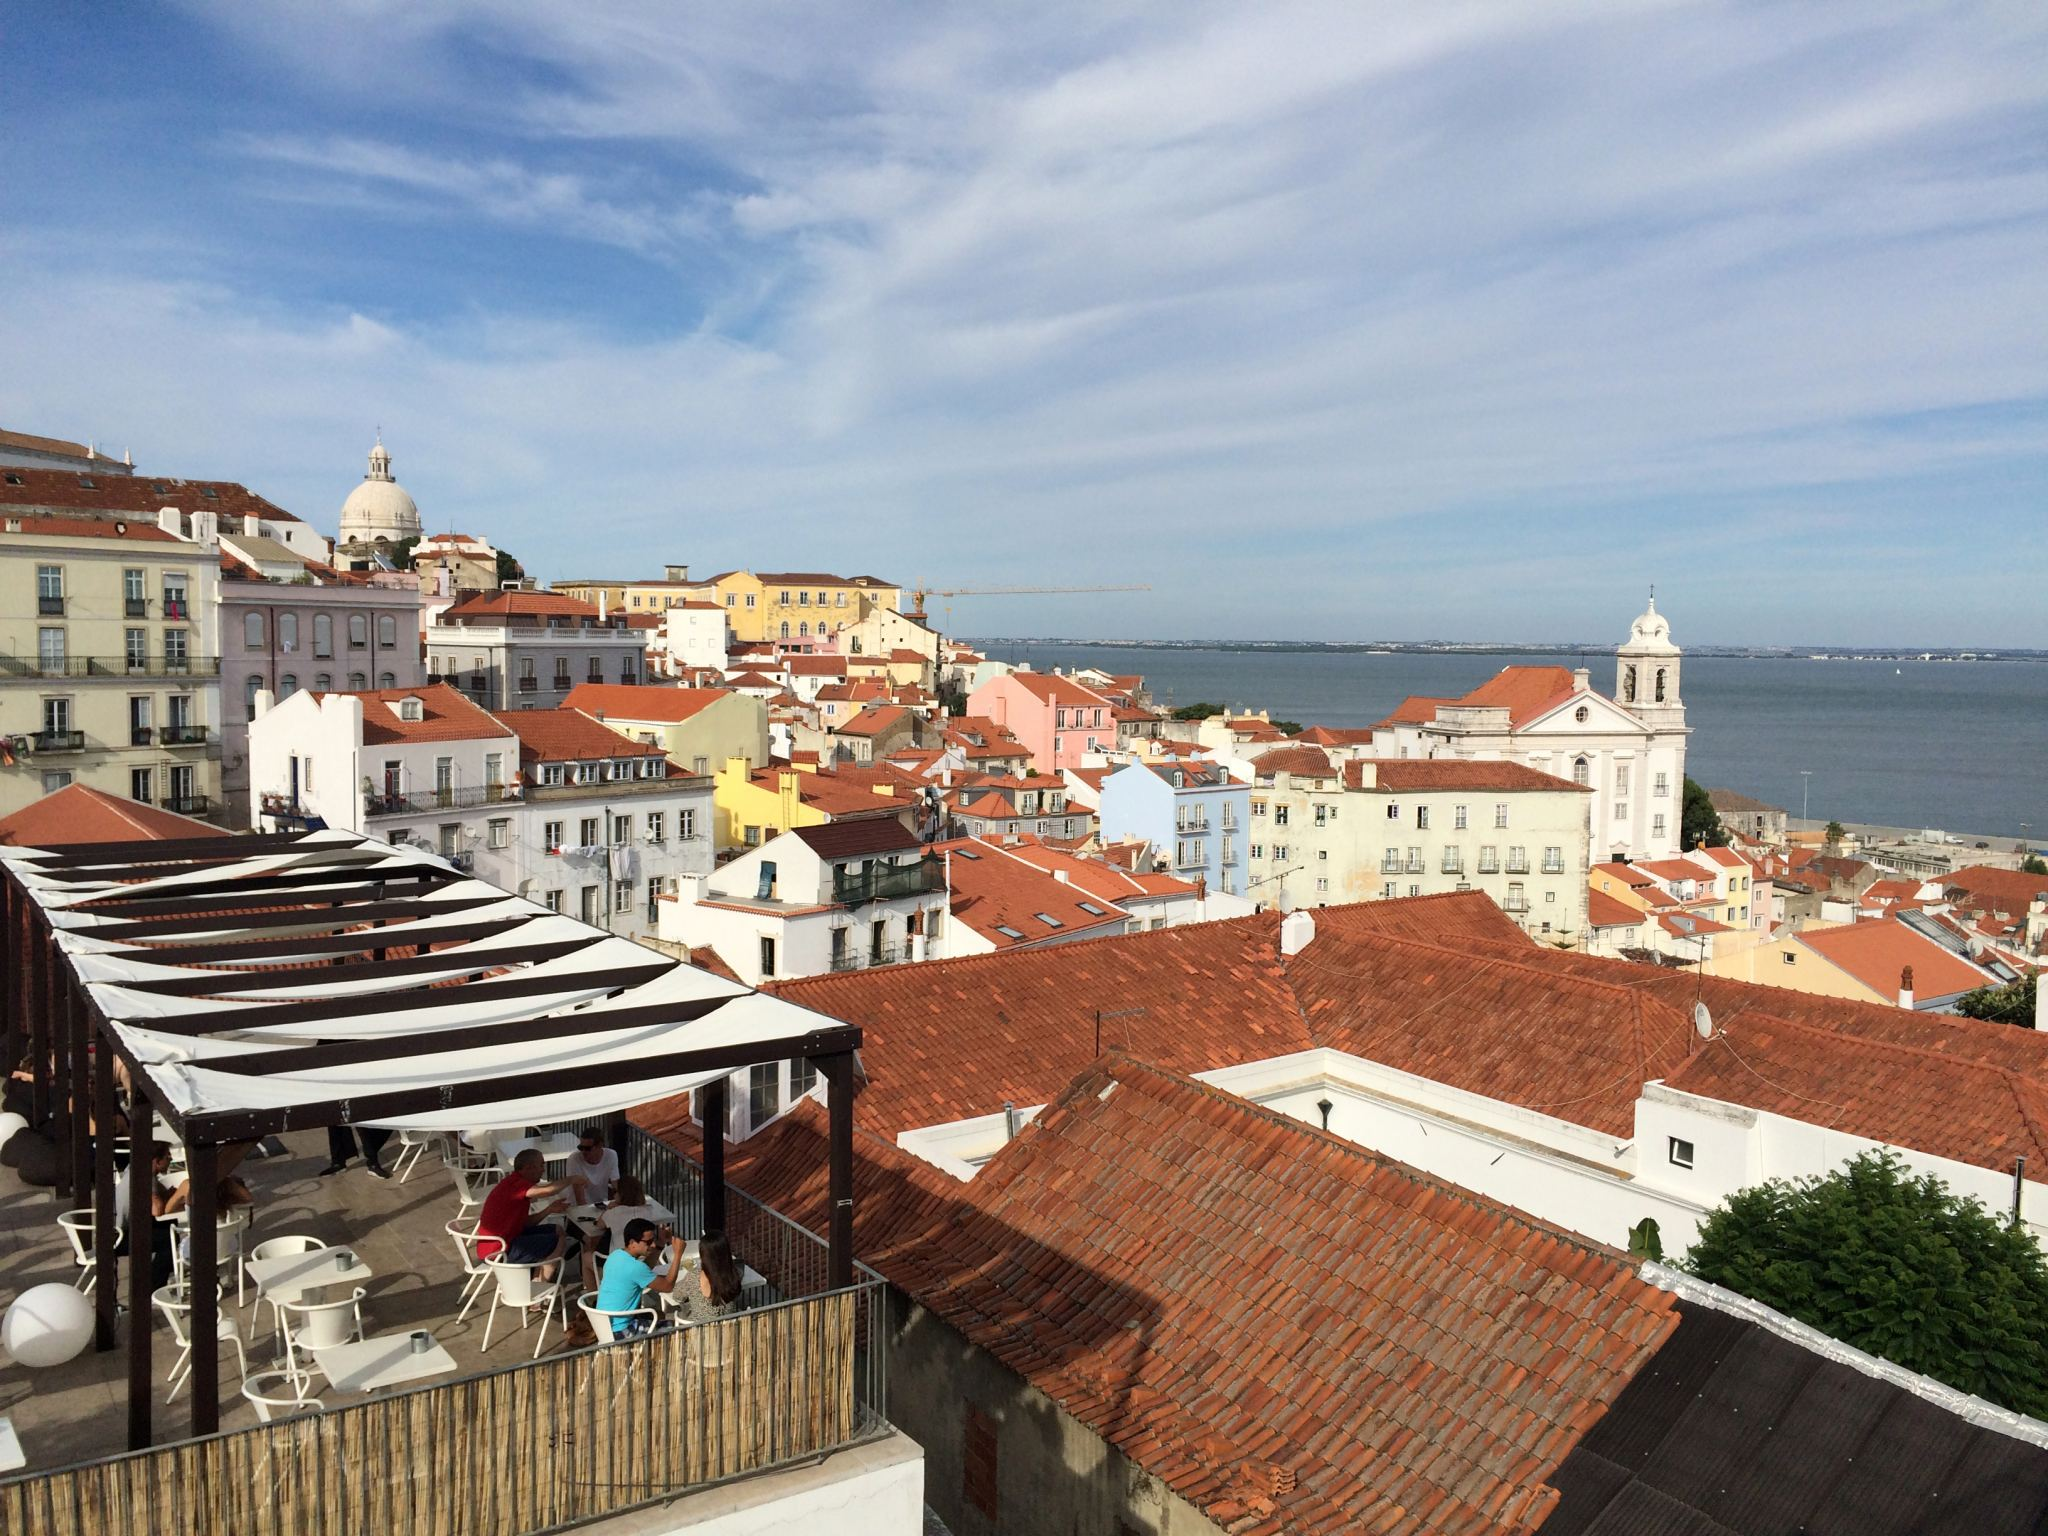 The view from Miradouro de Santa Luzia.